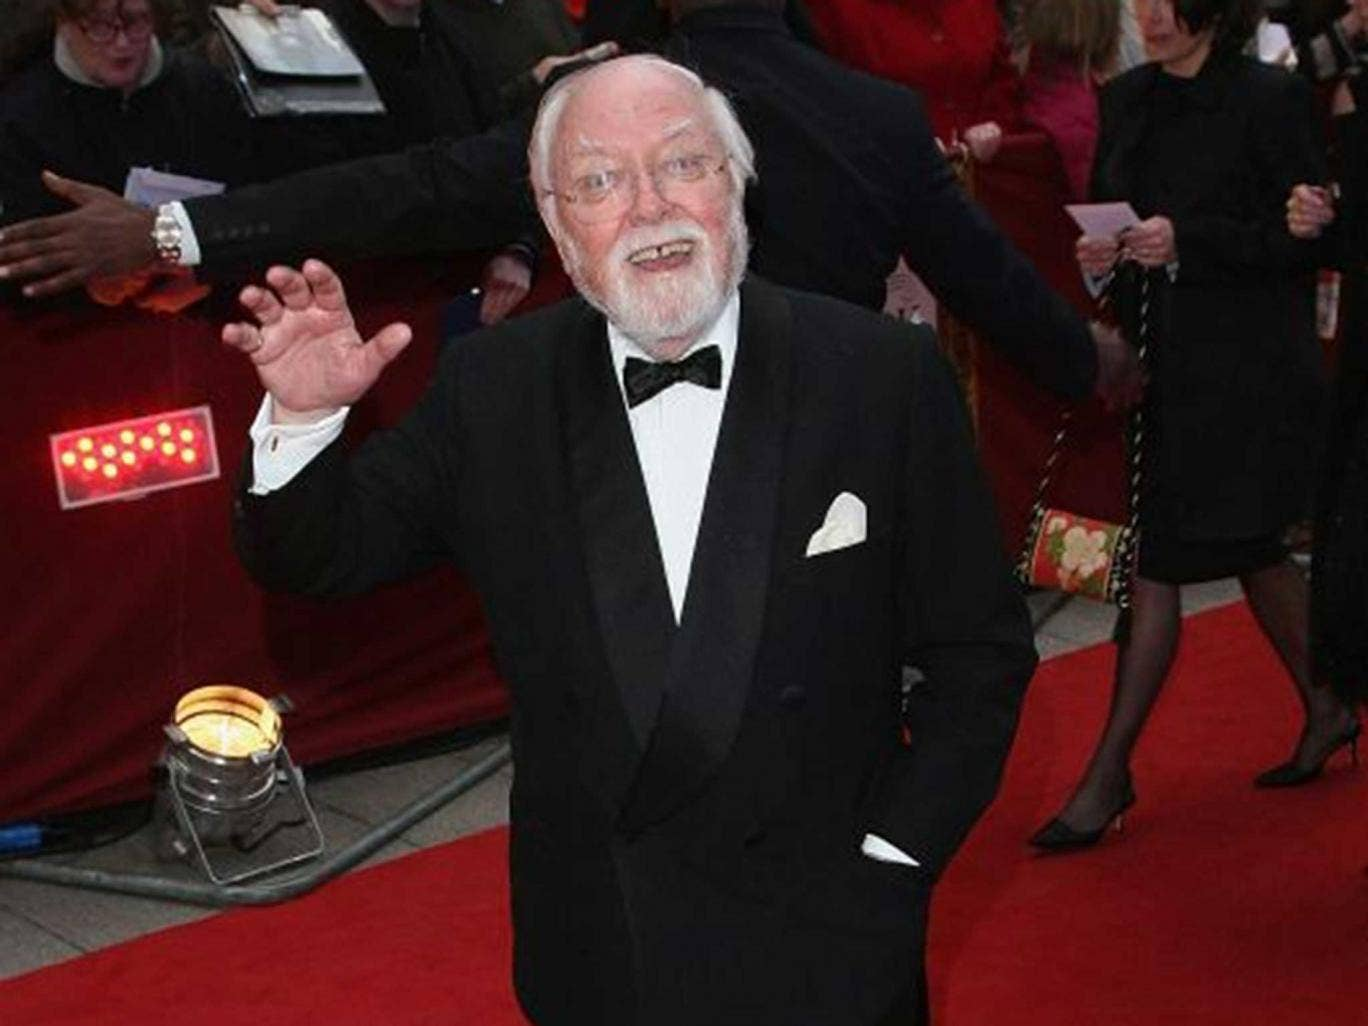 Richard Attenborough, who died on 25 August, attends a film premiere